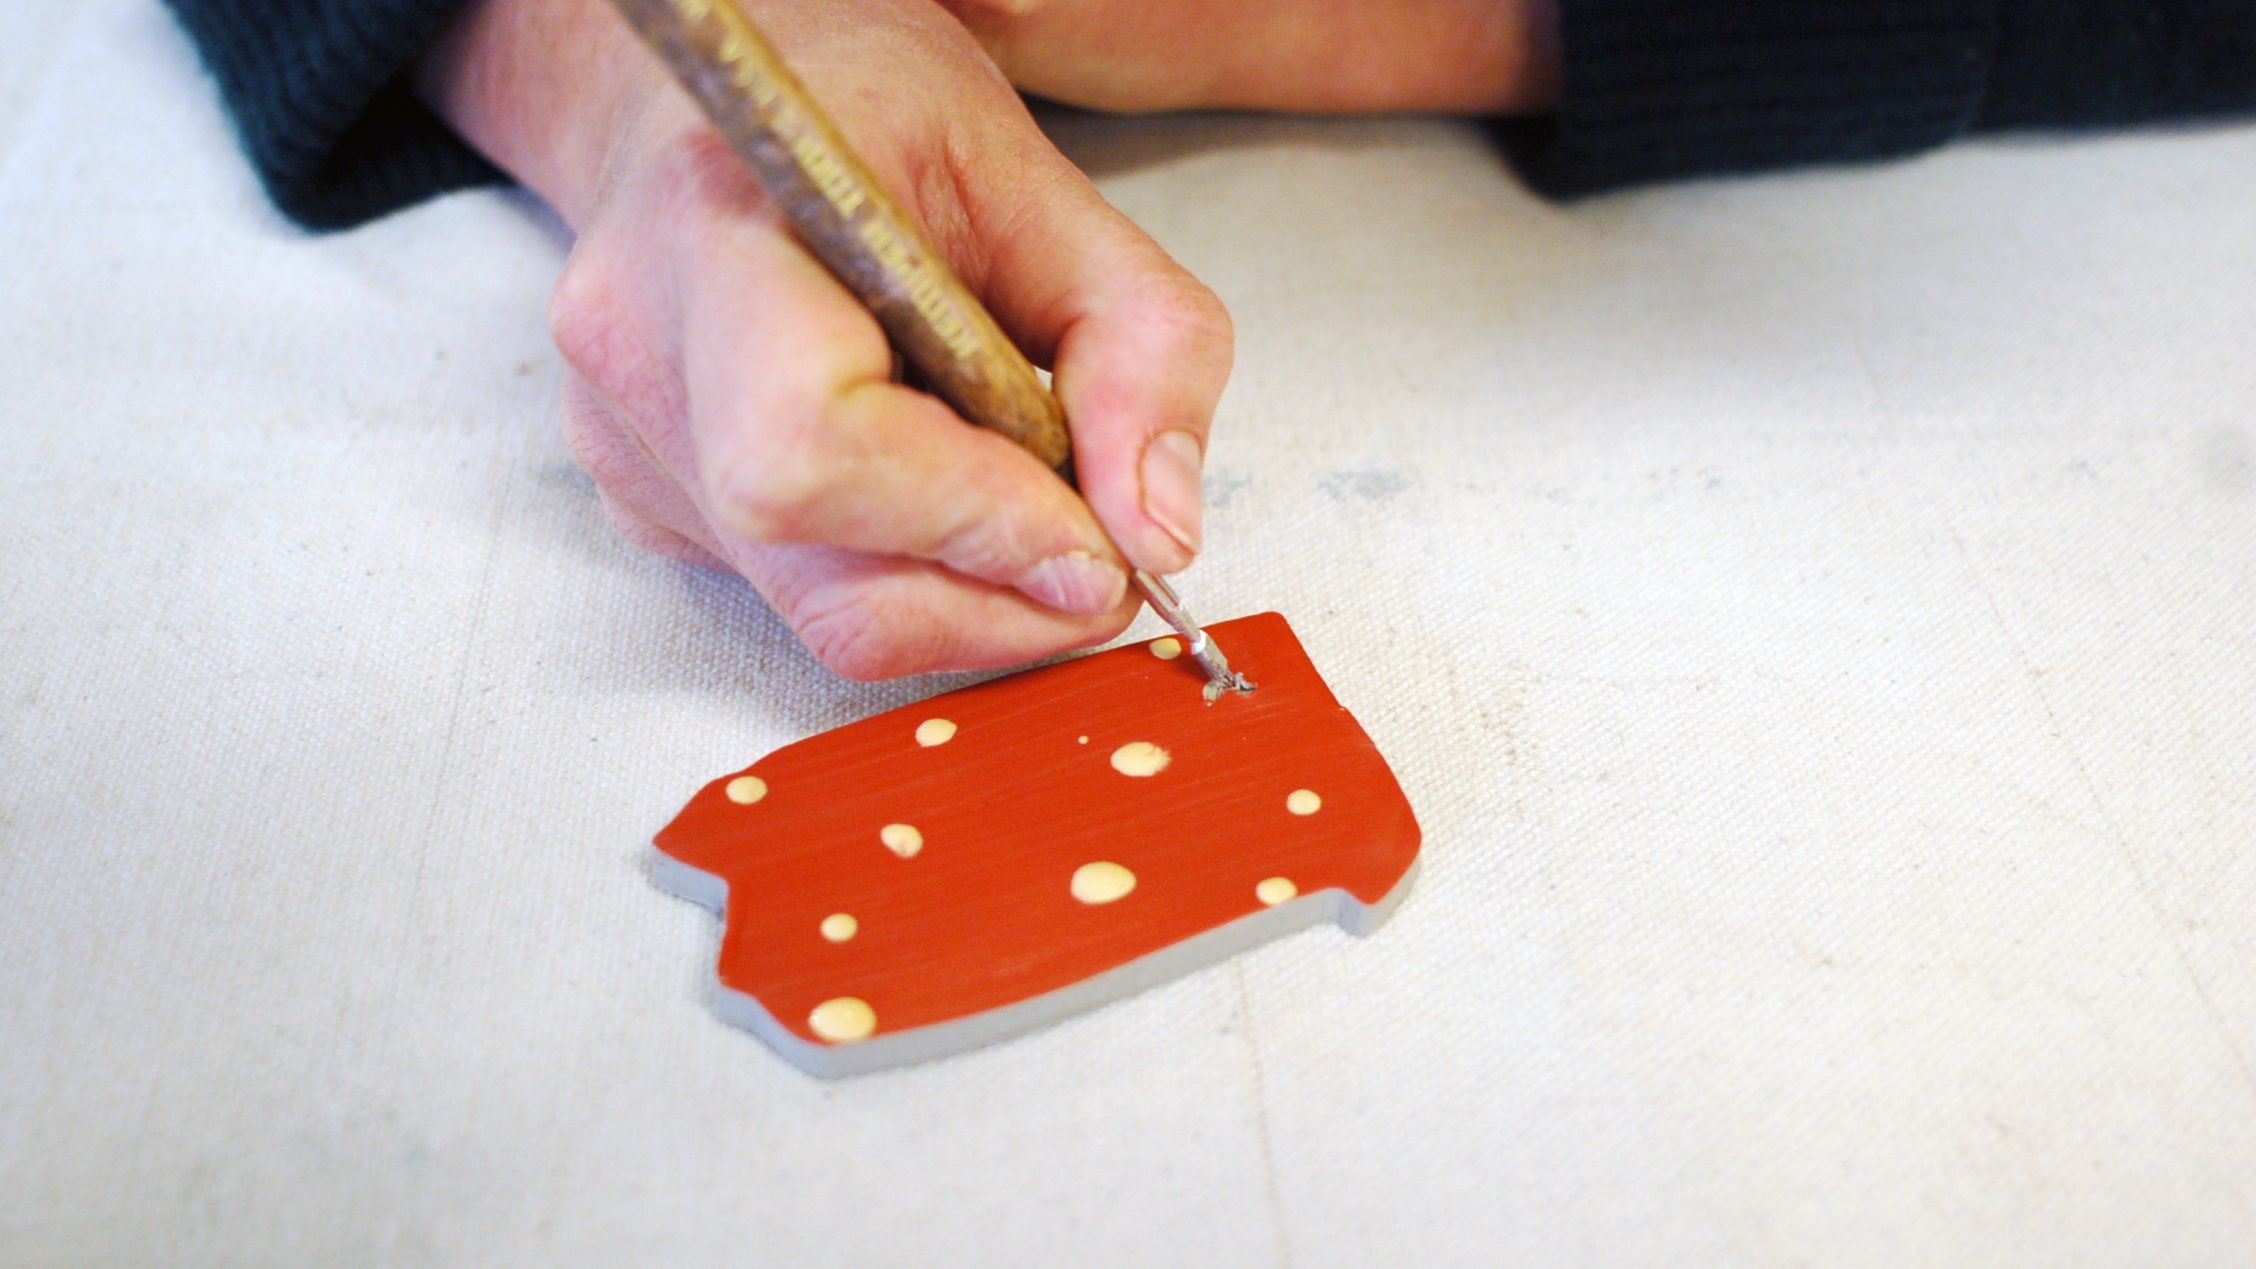 White hand holding a carving tool over a clay piece colored red with white dots, in the shape of the state of Pennsylvania.